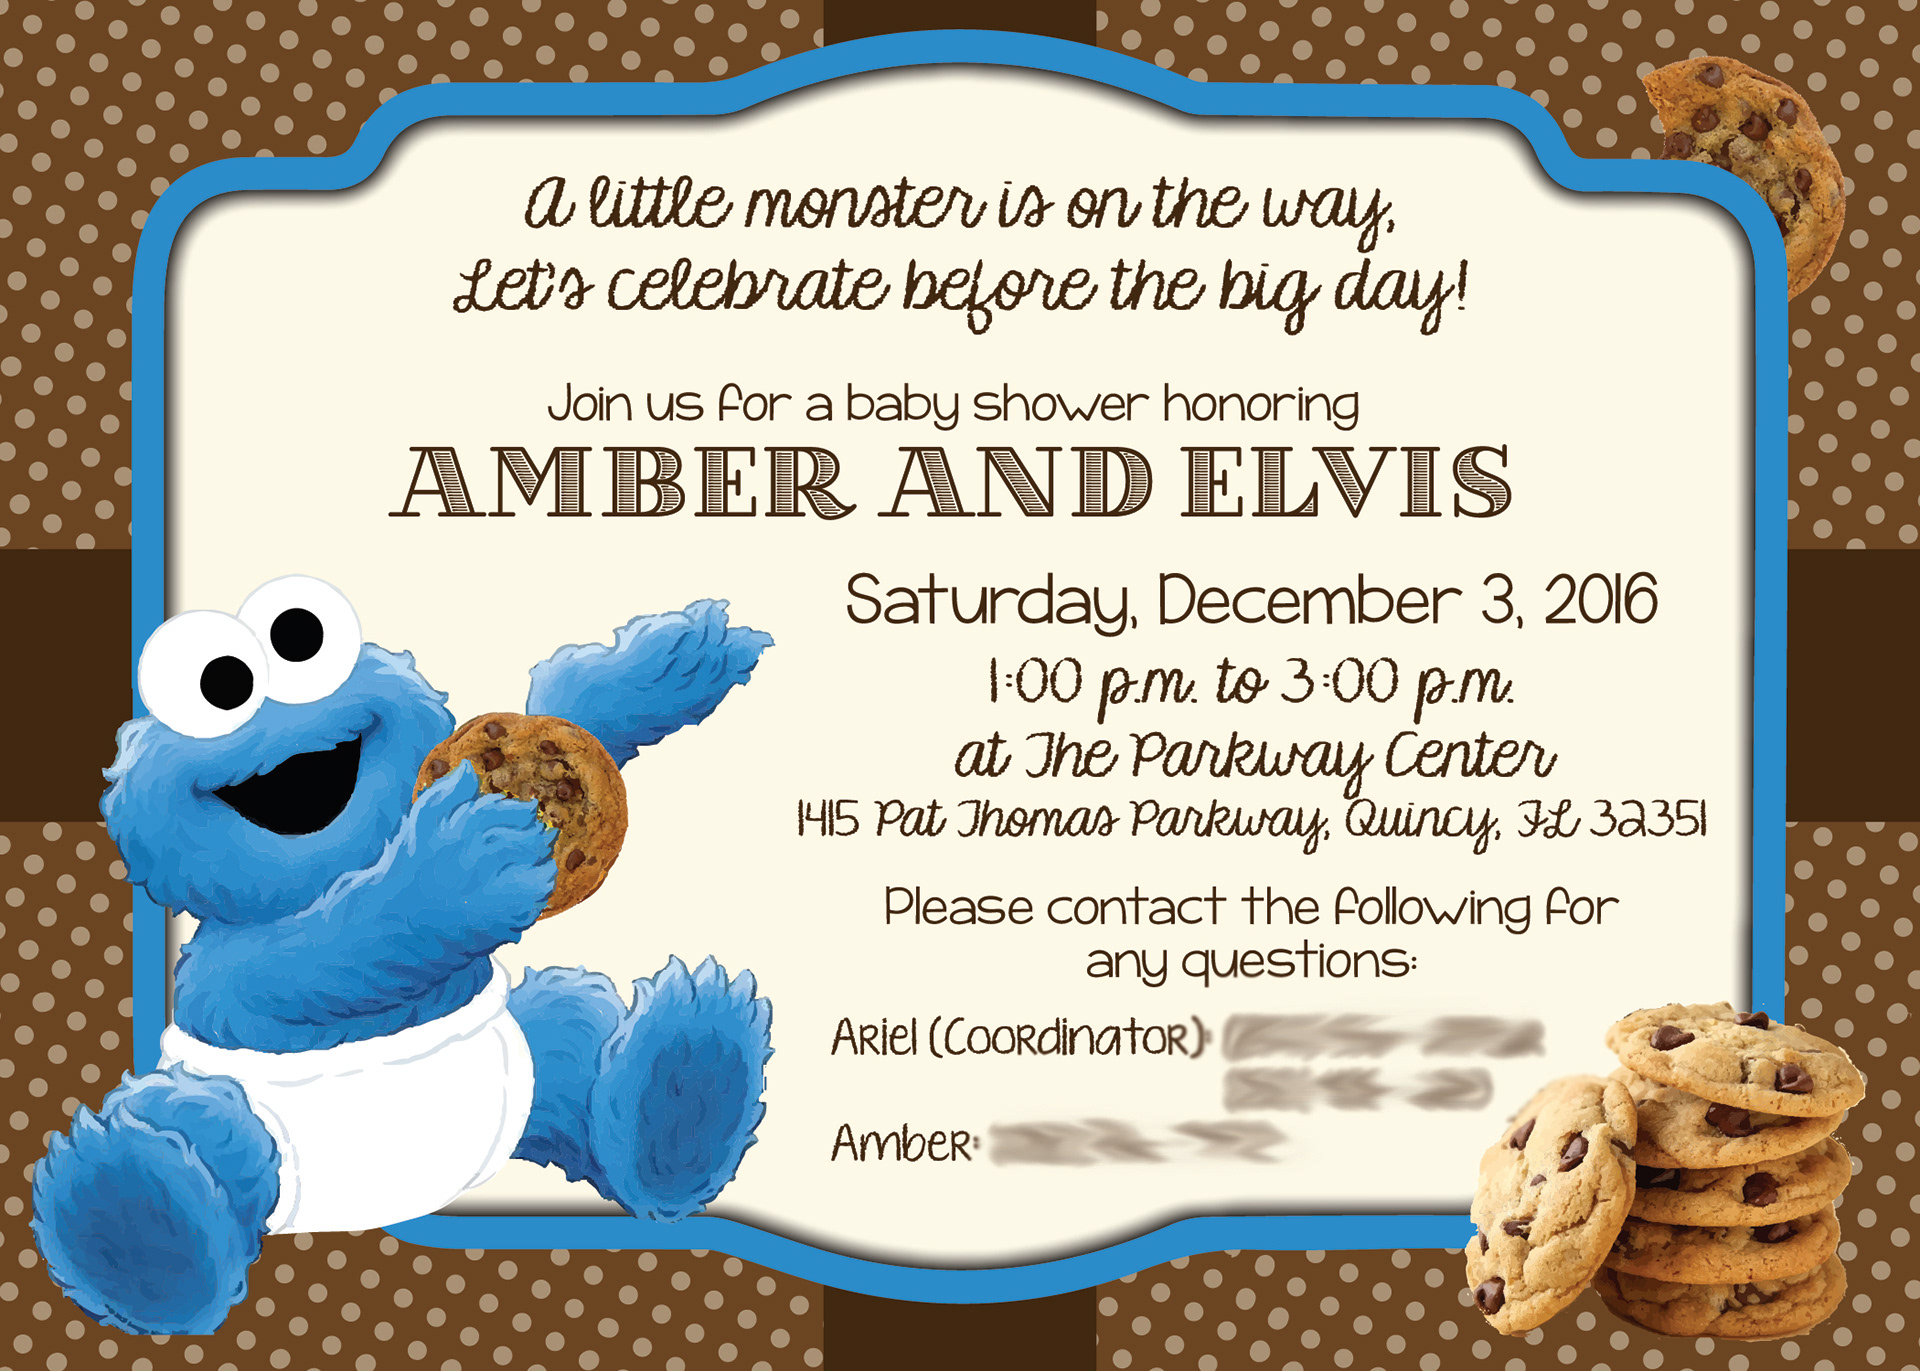 Wisheka Williams - Amber\'s Baby Shower Invitation (Cookie Monster Theme)